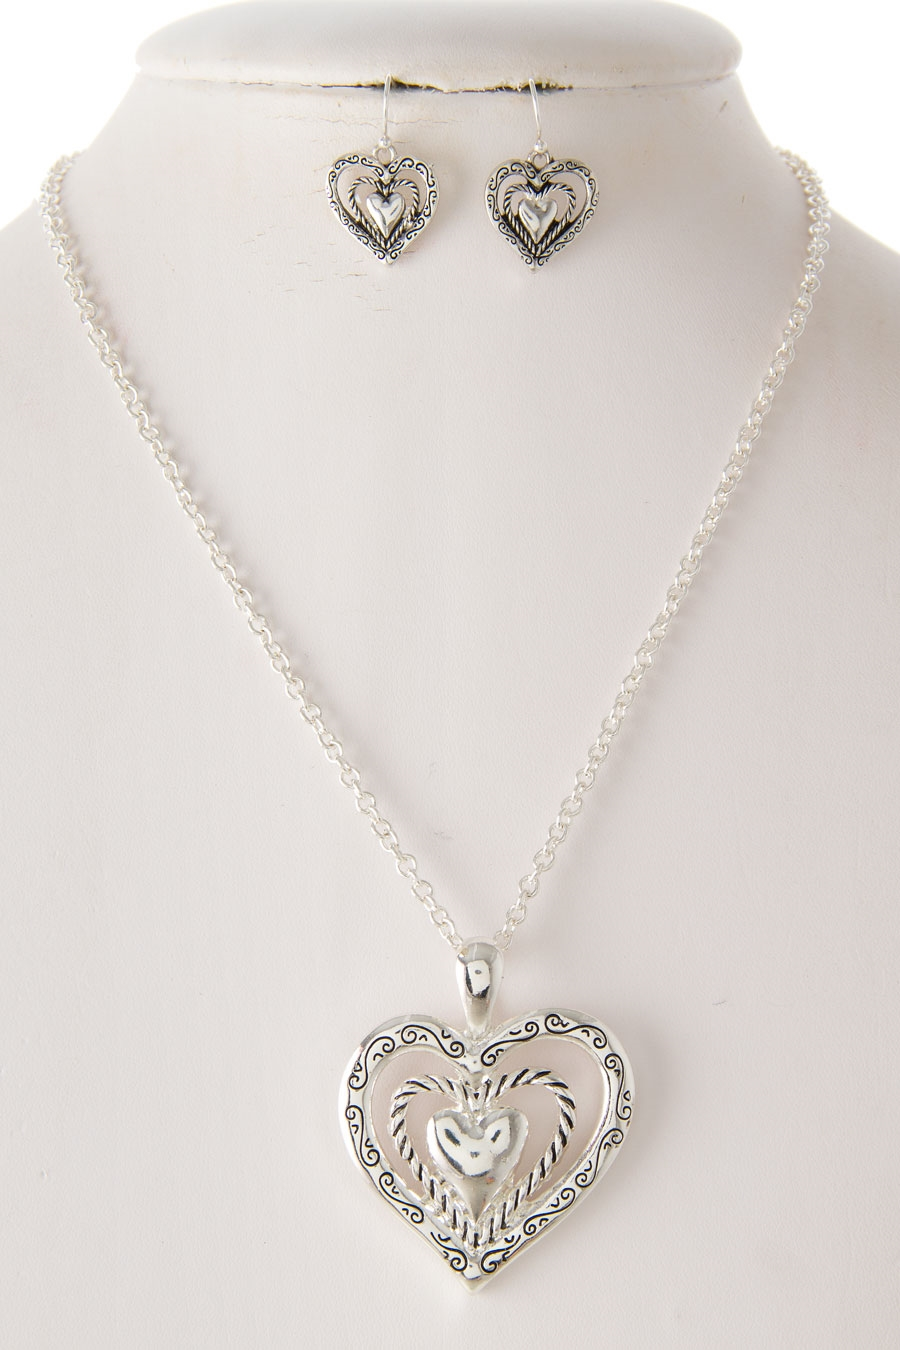 TRIPLE HEART PENDANT NECKLACE - orangeshine.com